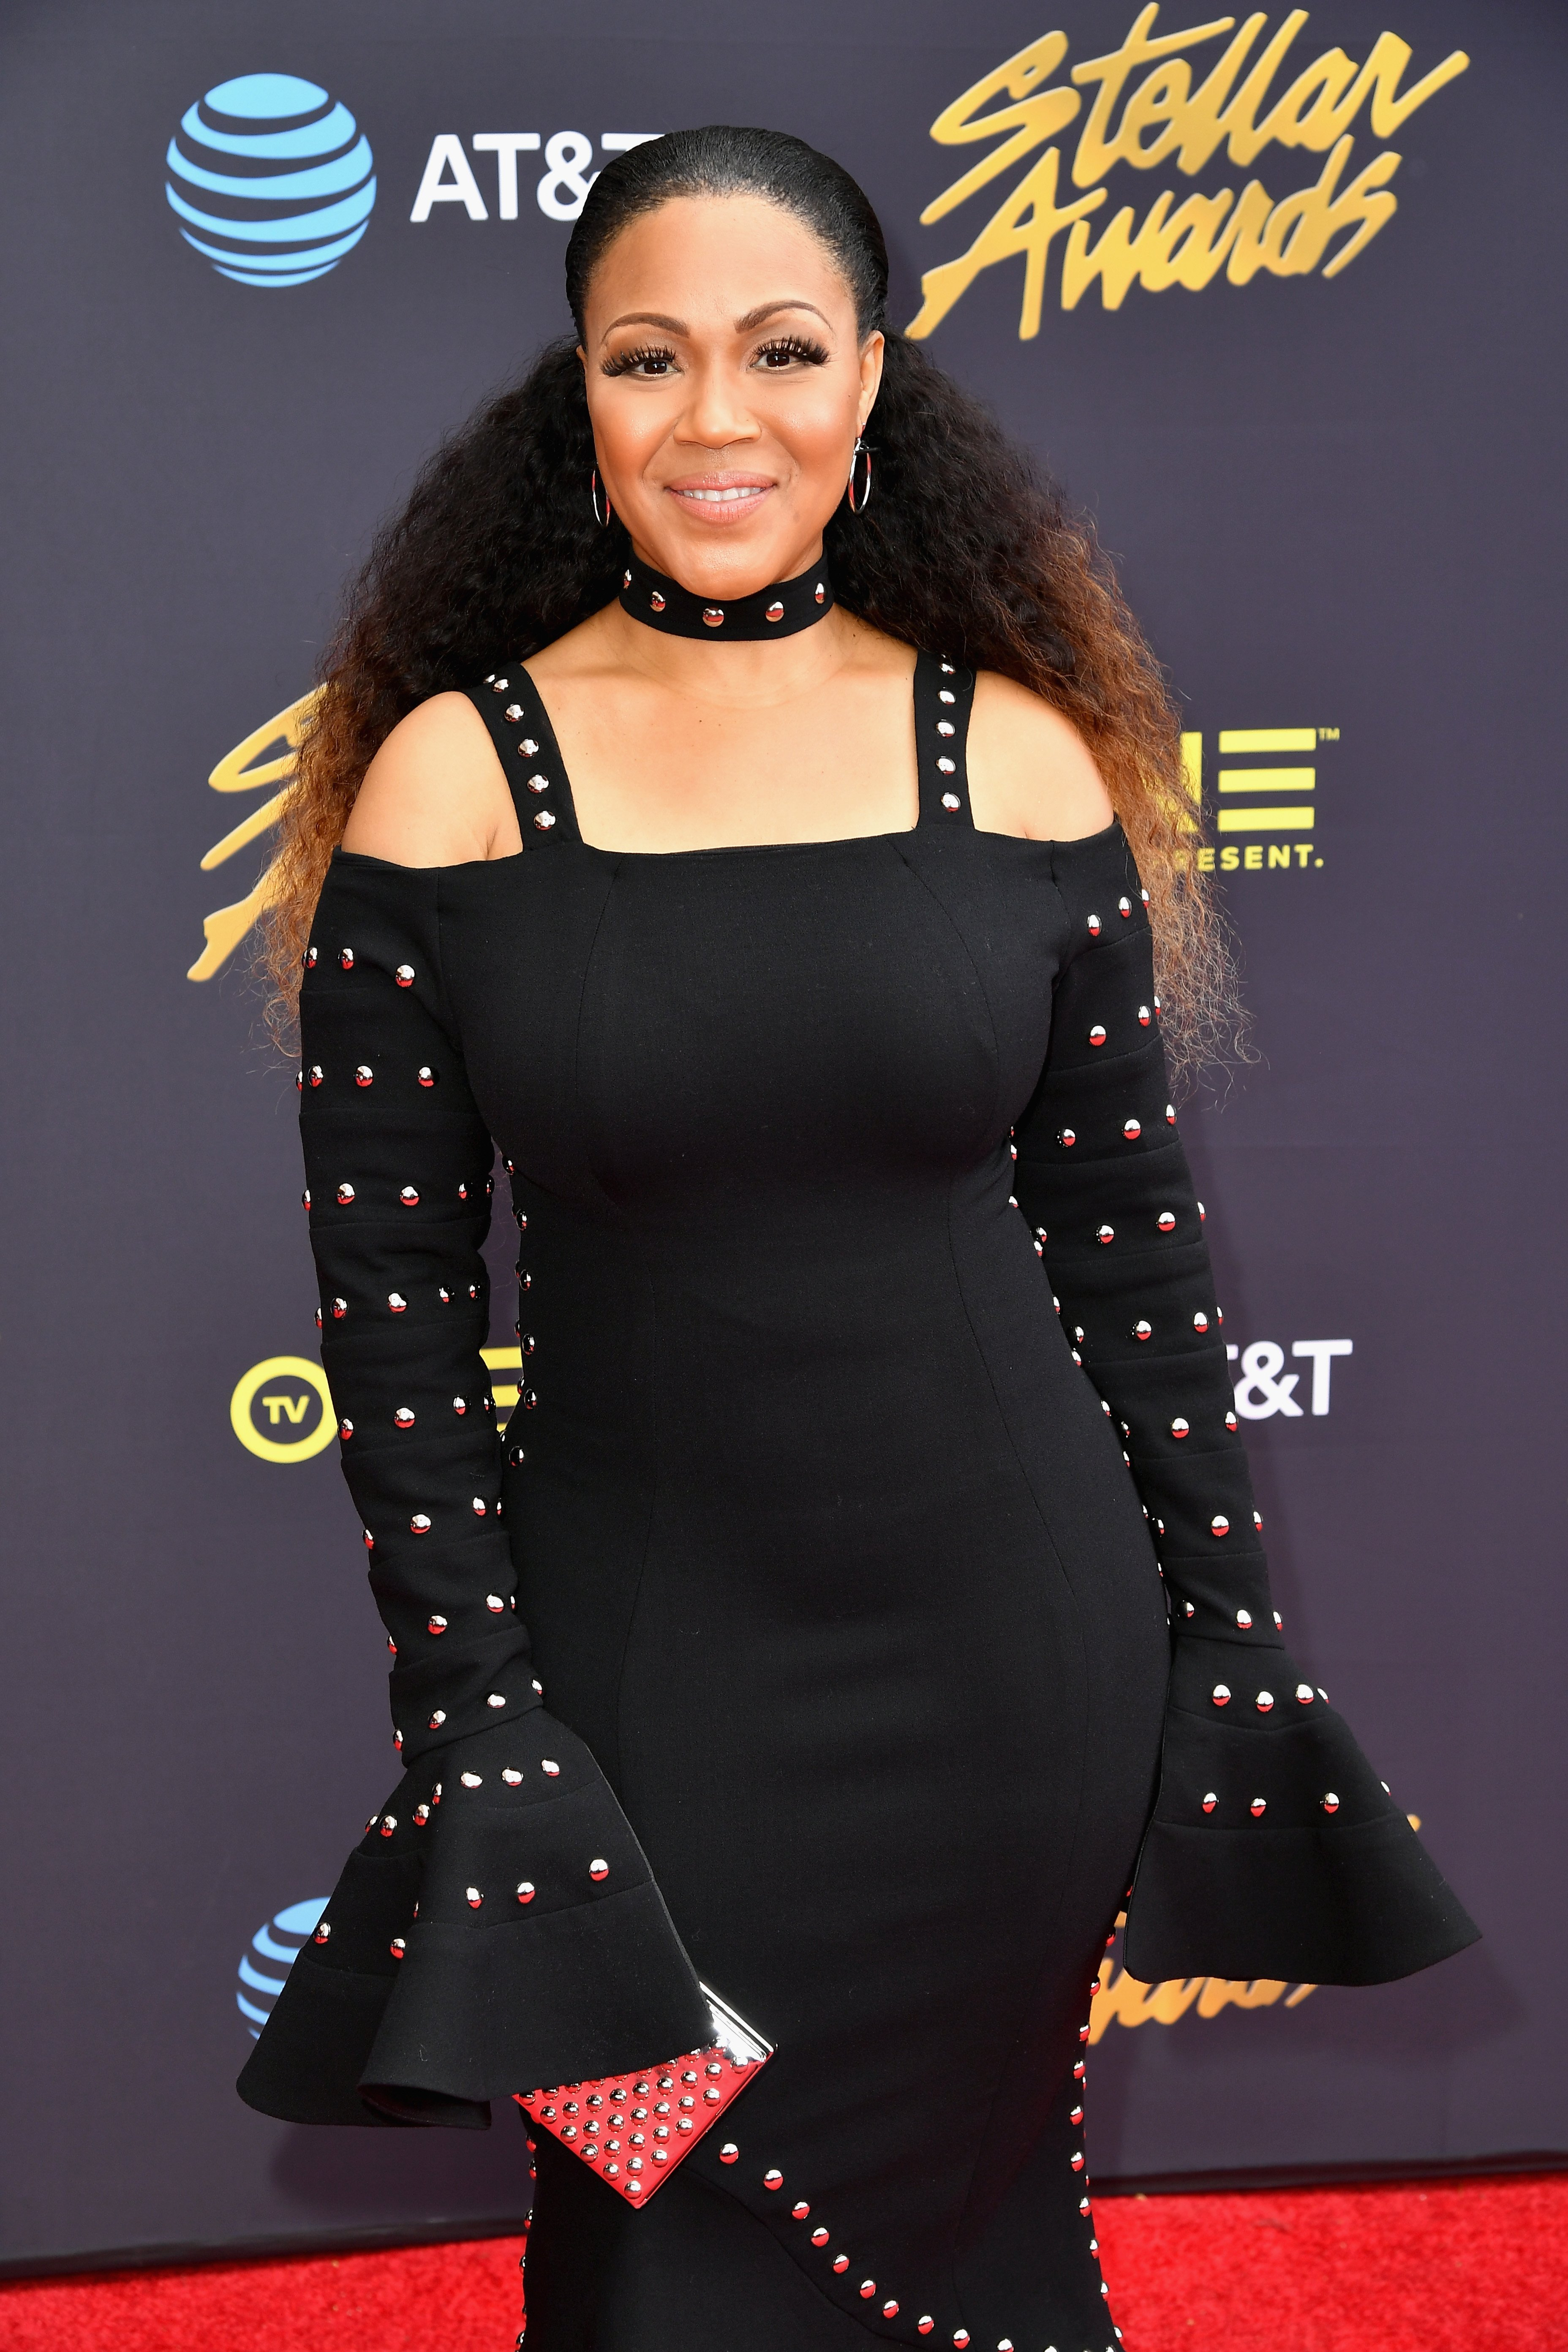 Erica Campbell at the Stellar Gospel Music Awards in Las Vegas, Nevada on Mar. 25, 2017   Photo: Getty Images